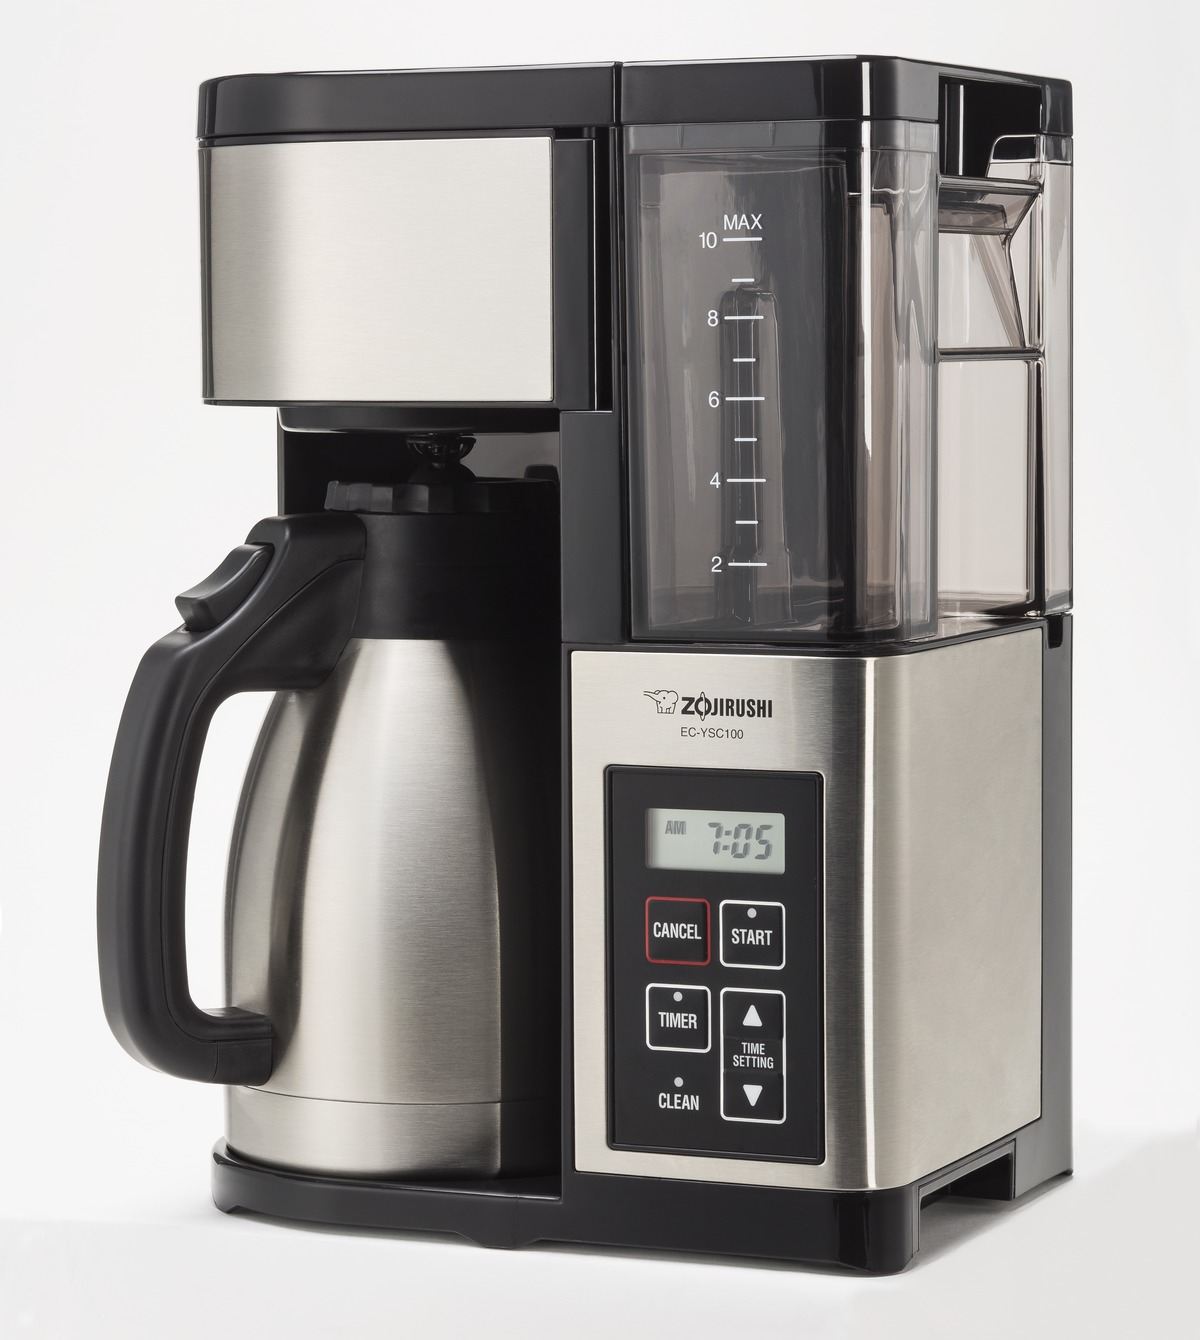 Coffee Maker Made In Usa Or Europe : Coffeemaker - Wikipedia